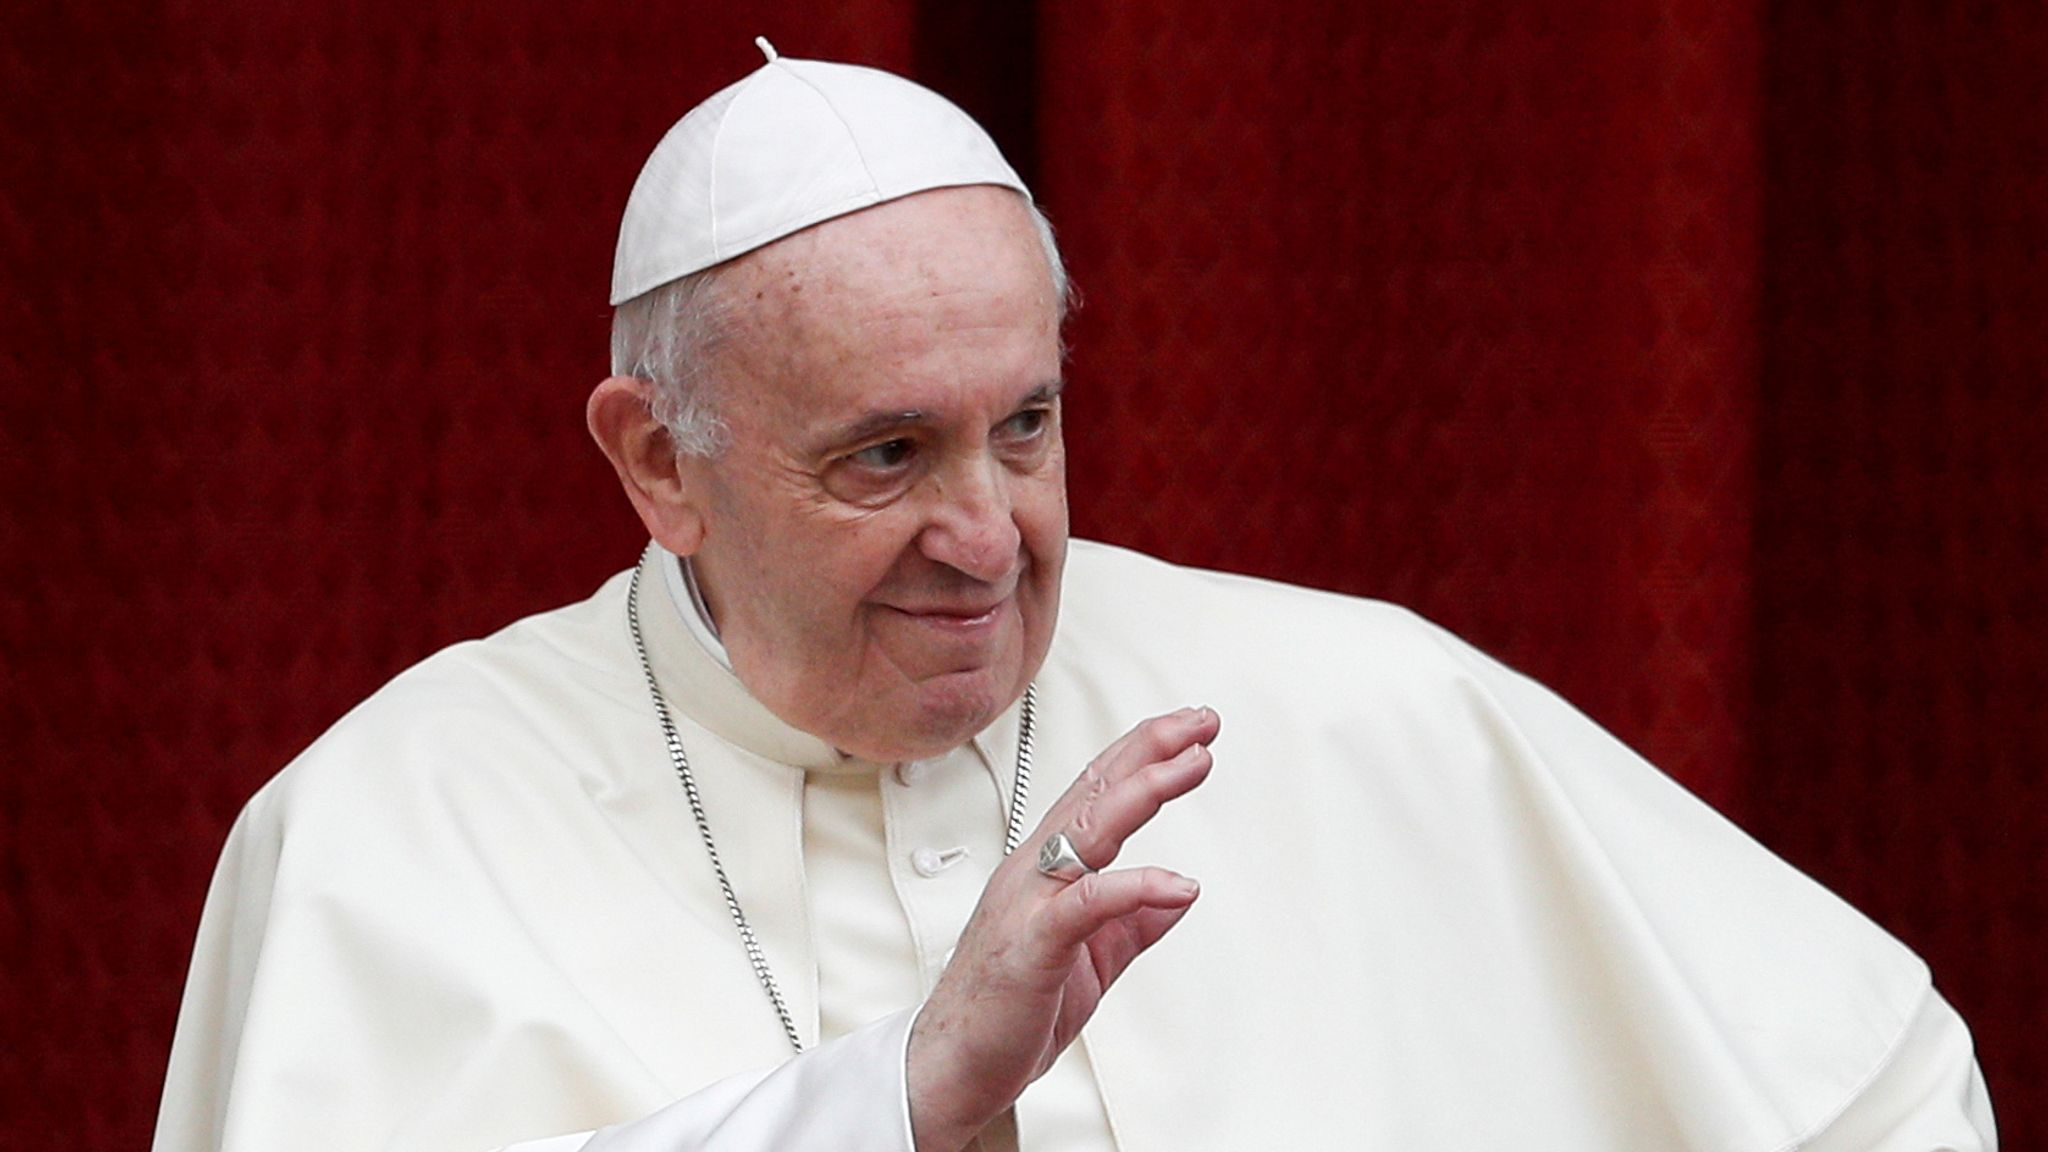 Pope Francis backs same-sex civil unions for first time as pontiff | World  News | Sky News